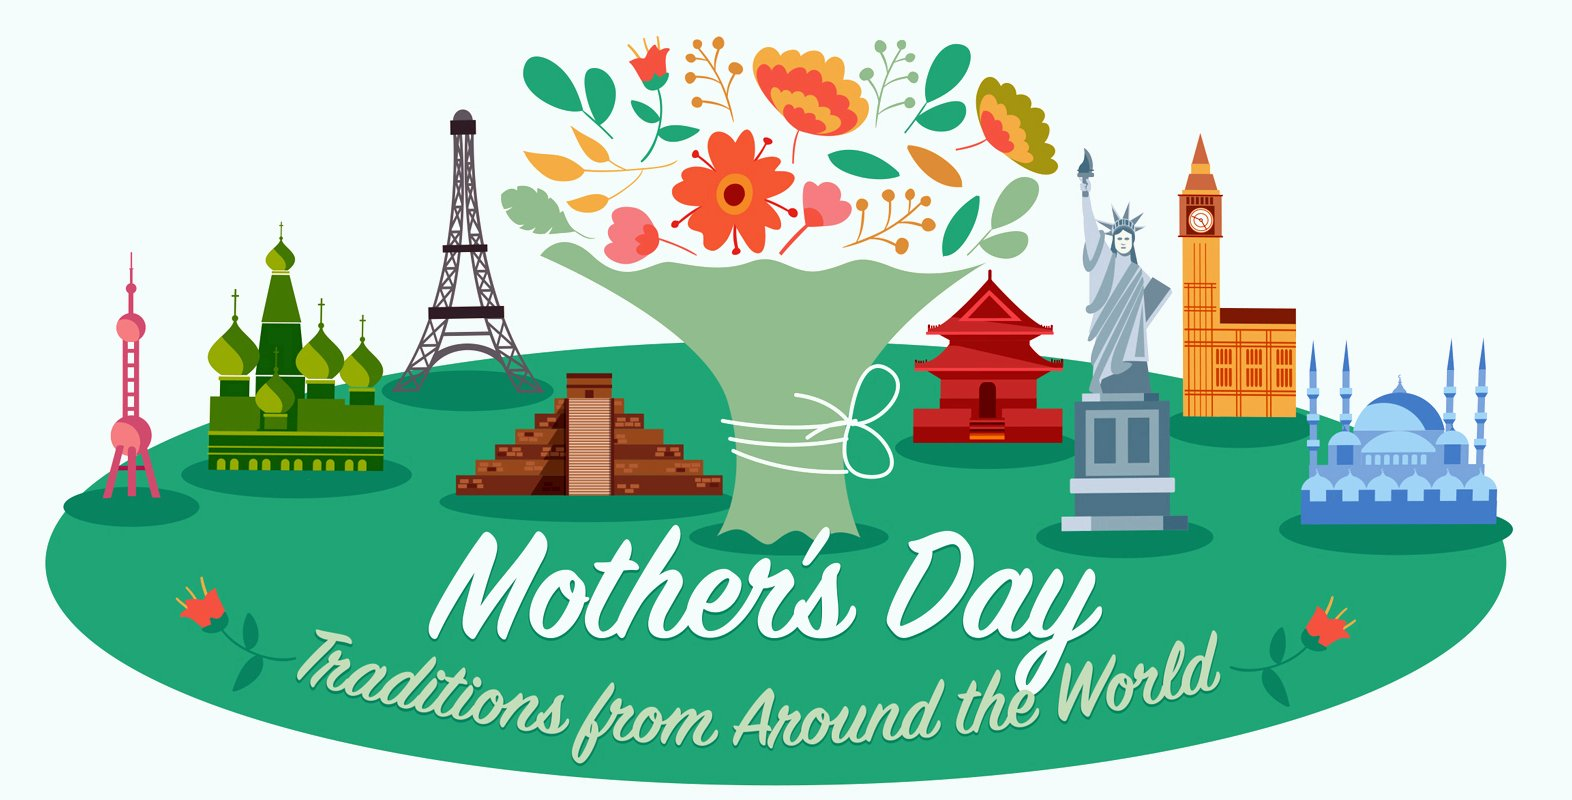 Different Mother's Day Traditions All across the Globe